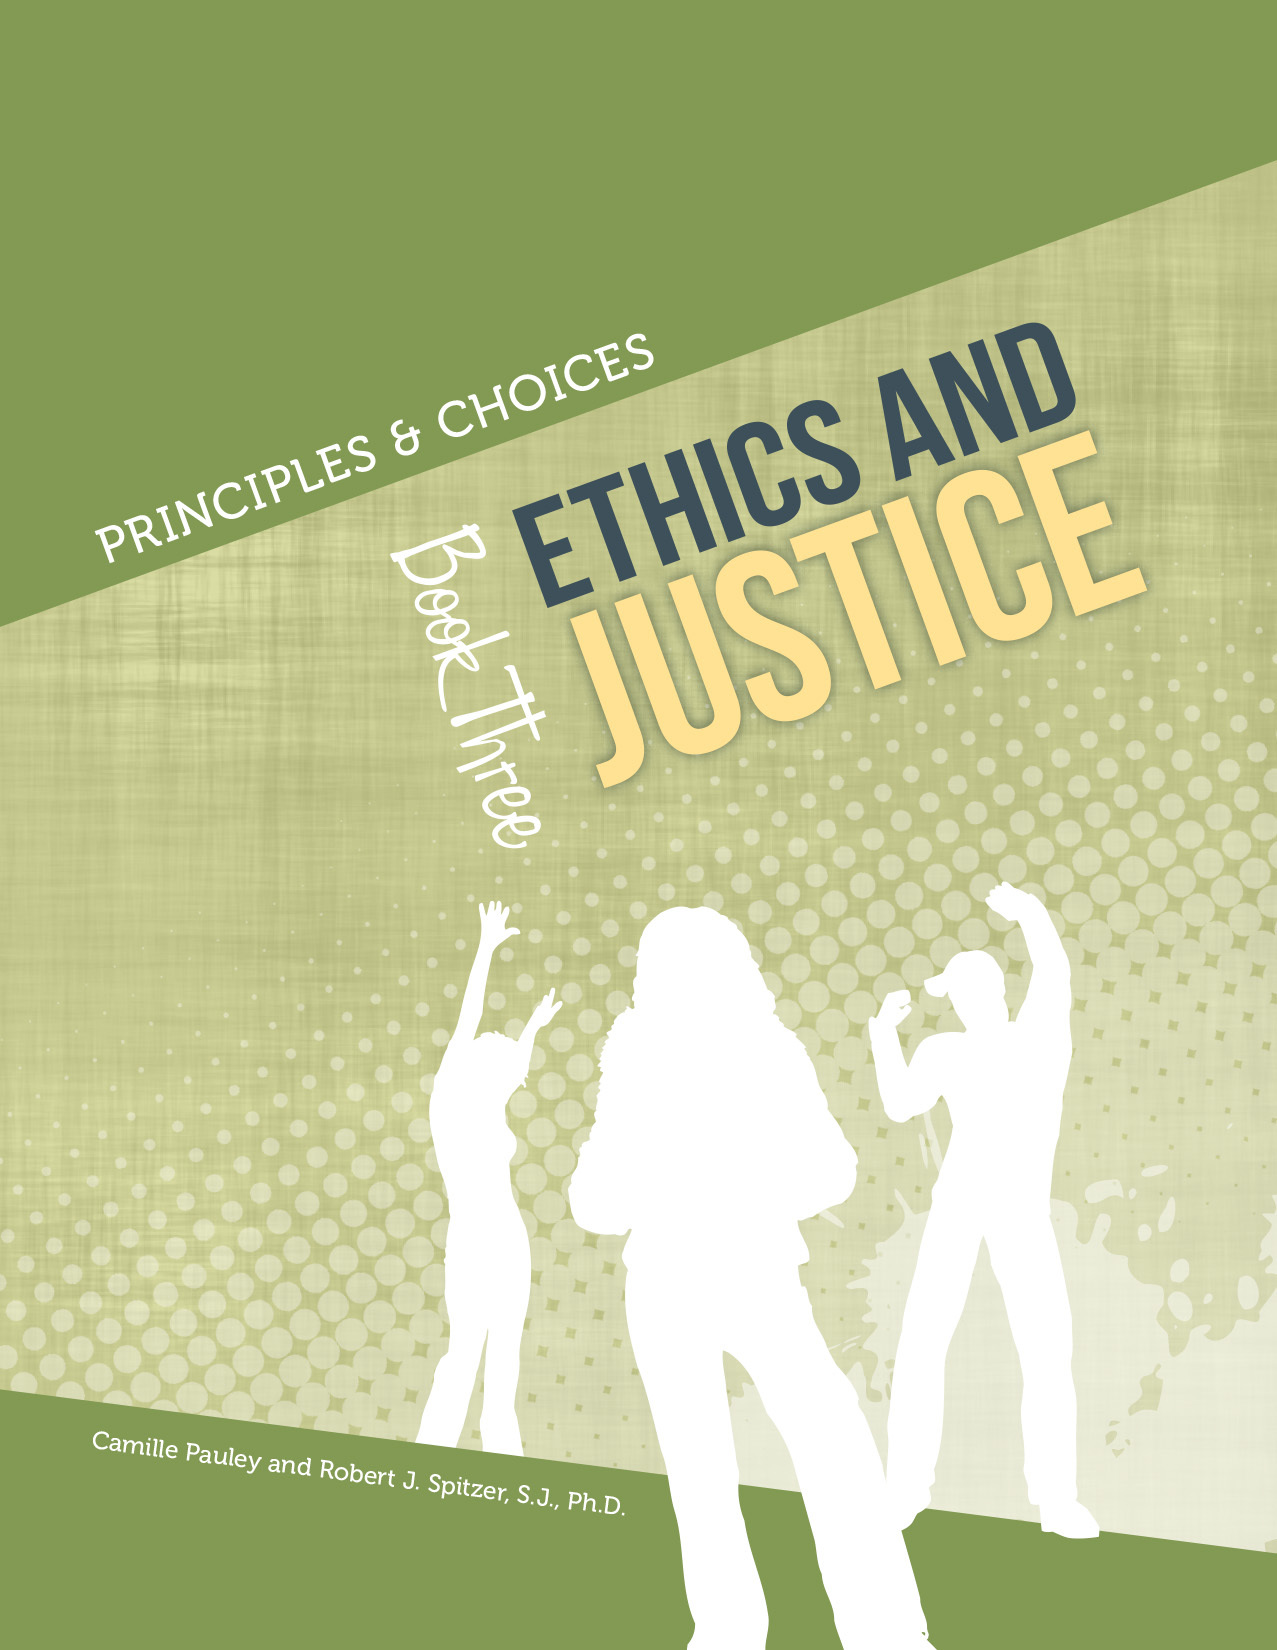 Principles & Choices 3 – Ethics and Justice